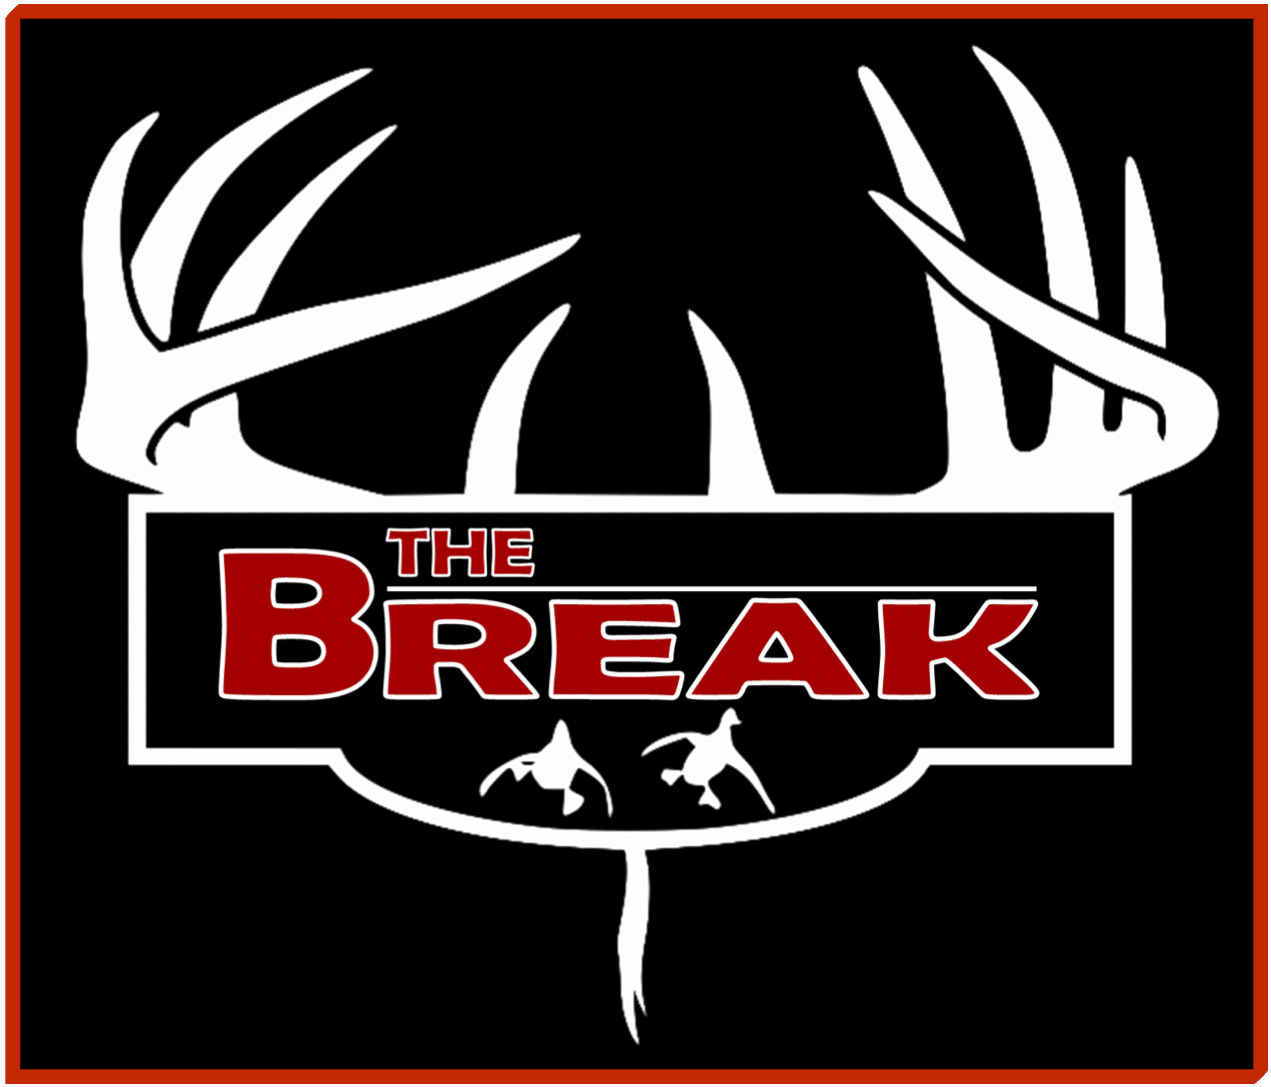 https://i2.wp.com/banksoutdoors.com/wp-content/uploads/2017/08/The-Break-framed-logo-big.png?ssl=1